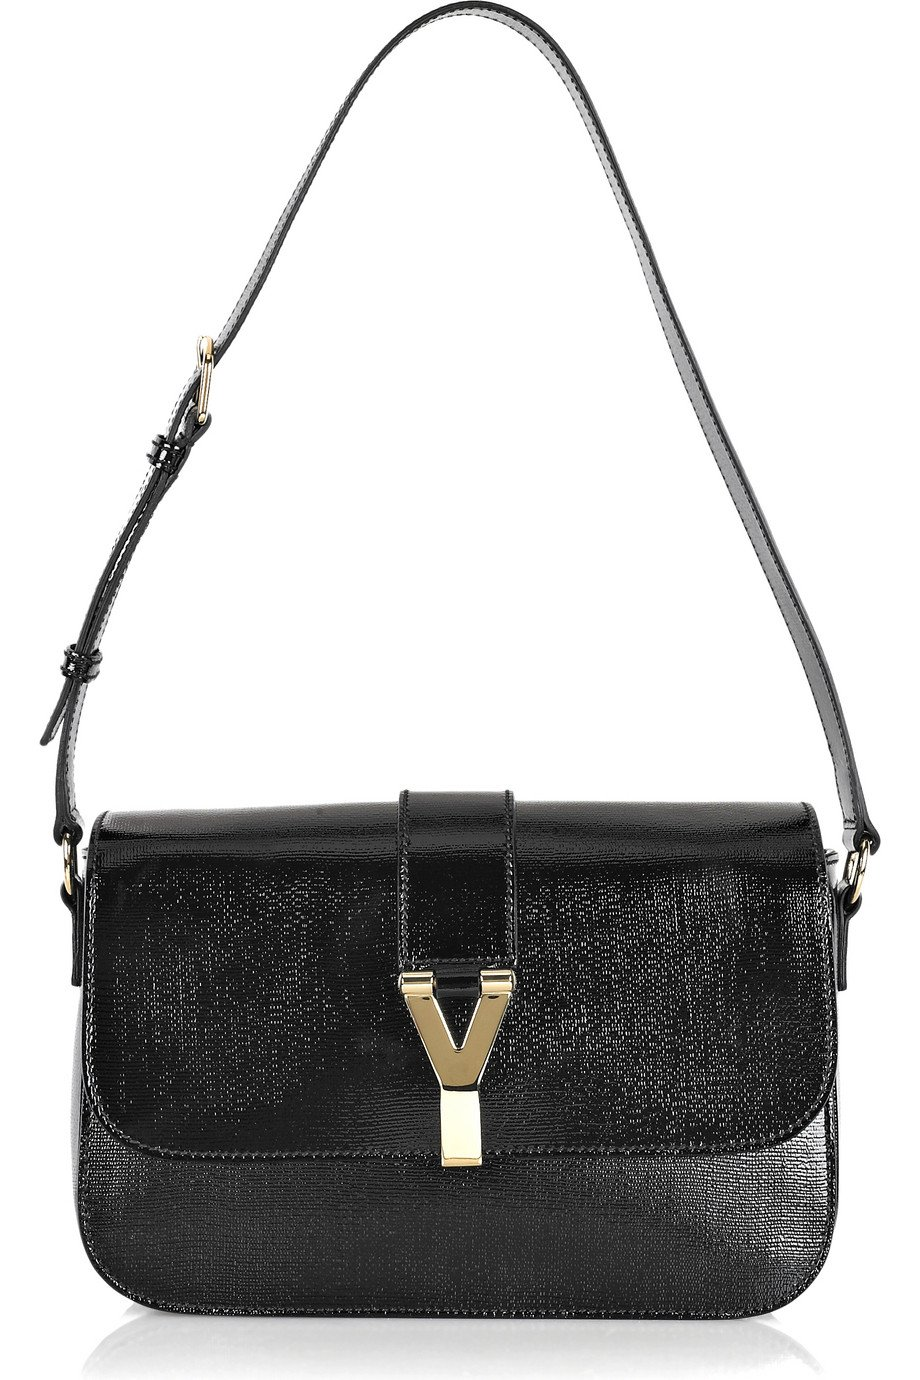 Saint laurent Chyc Large Flap Shoulder Bag in Black | Lyst